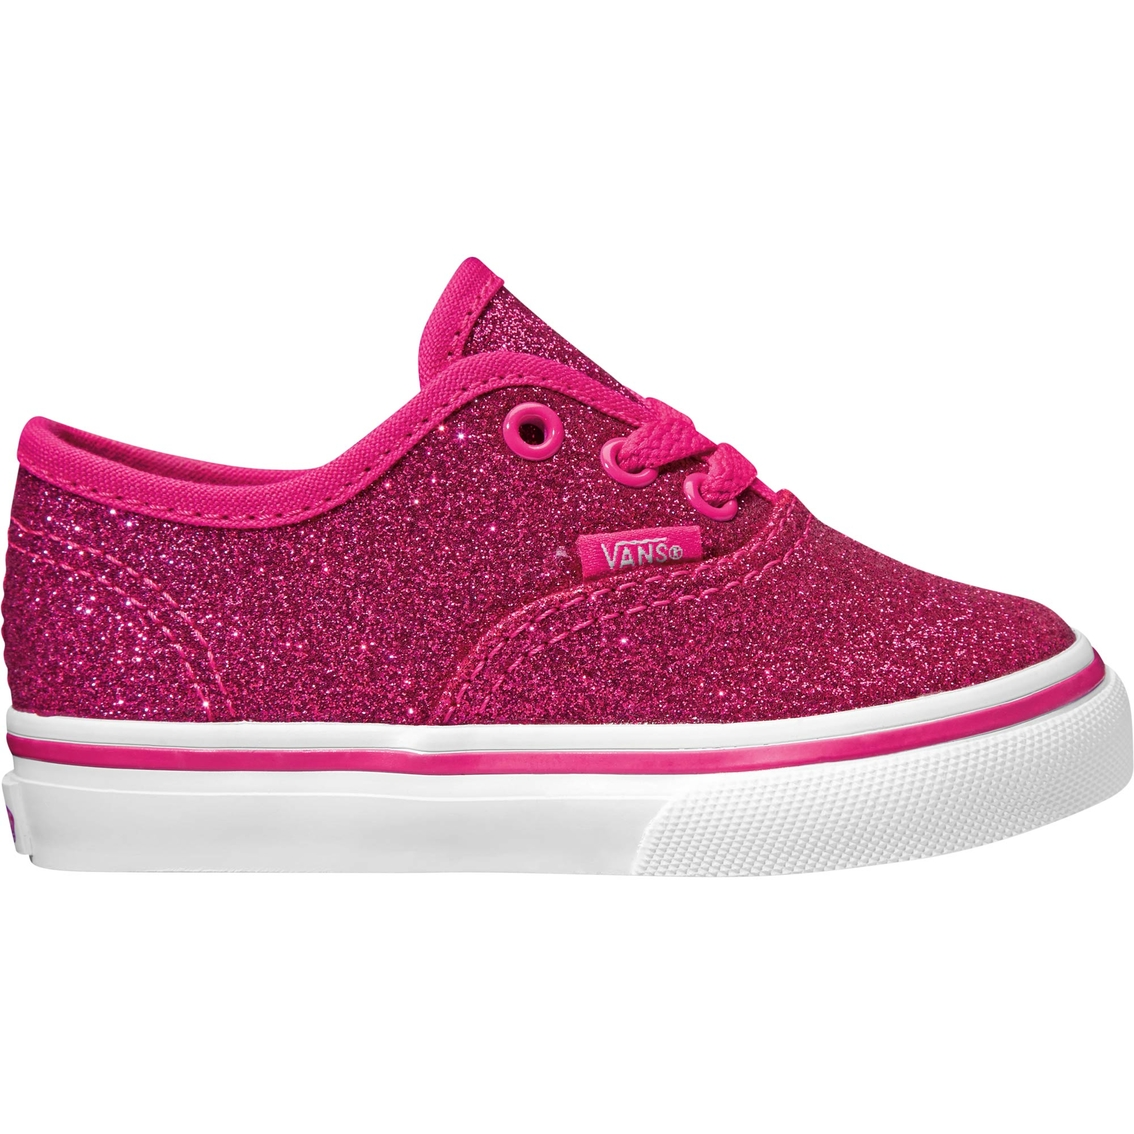 2fadad08bc Vans Toddler Girls Authentic Sneakers